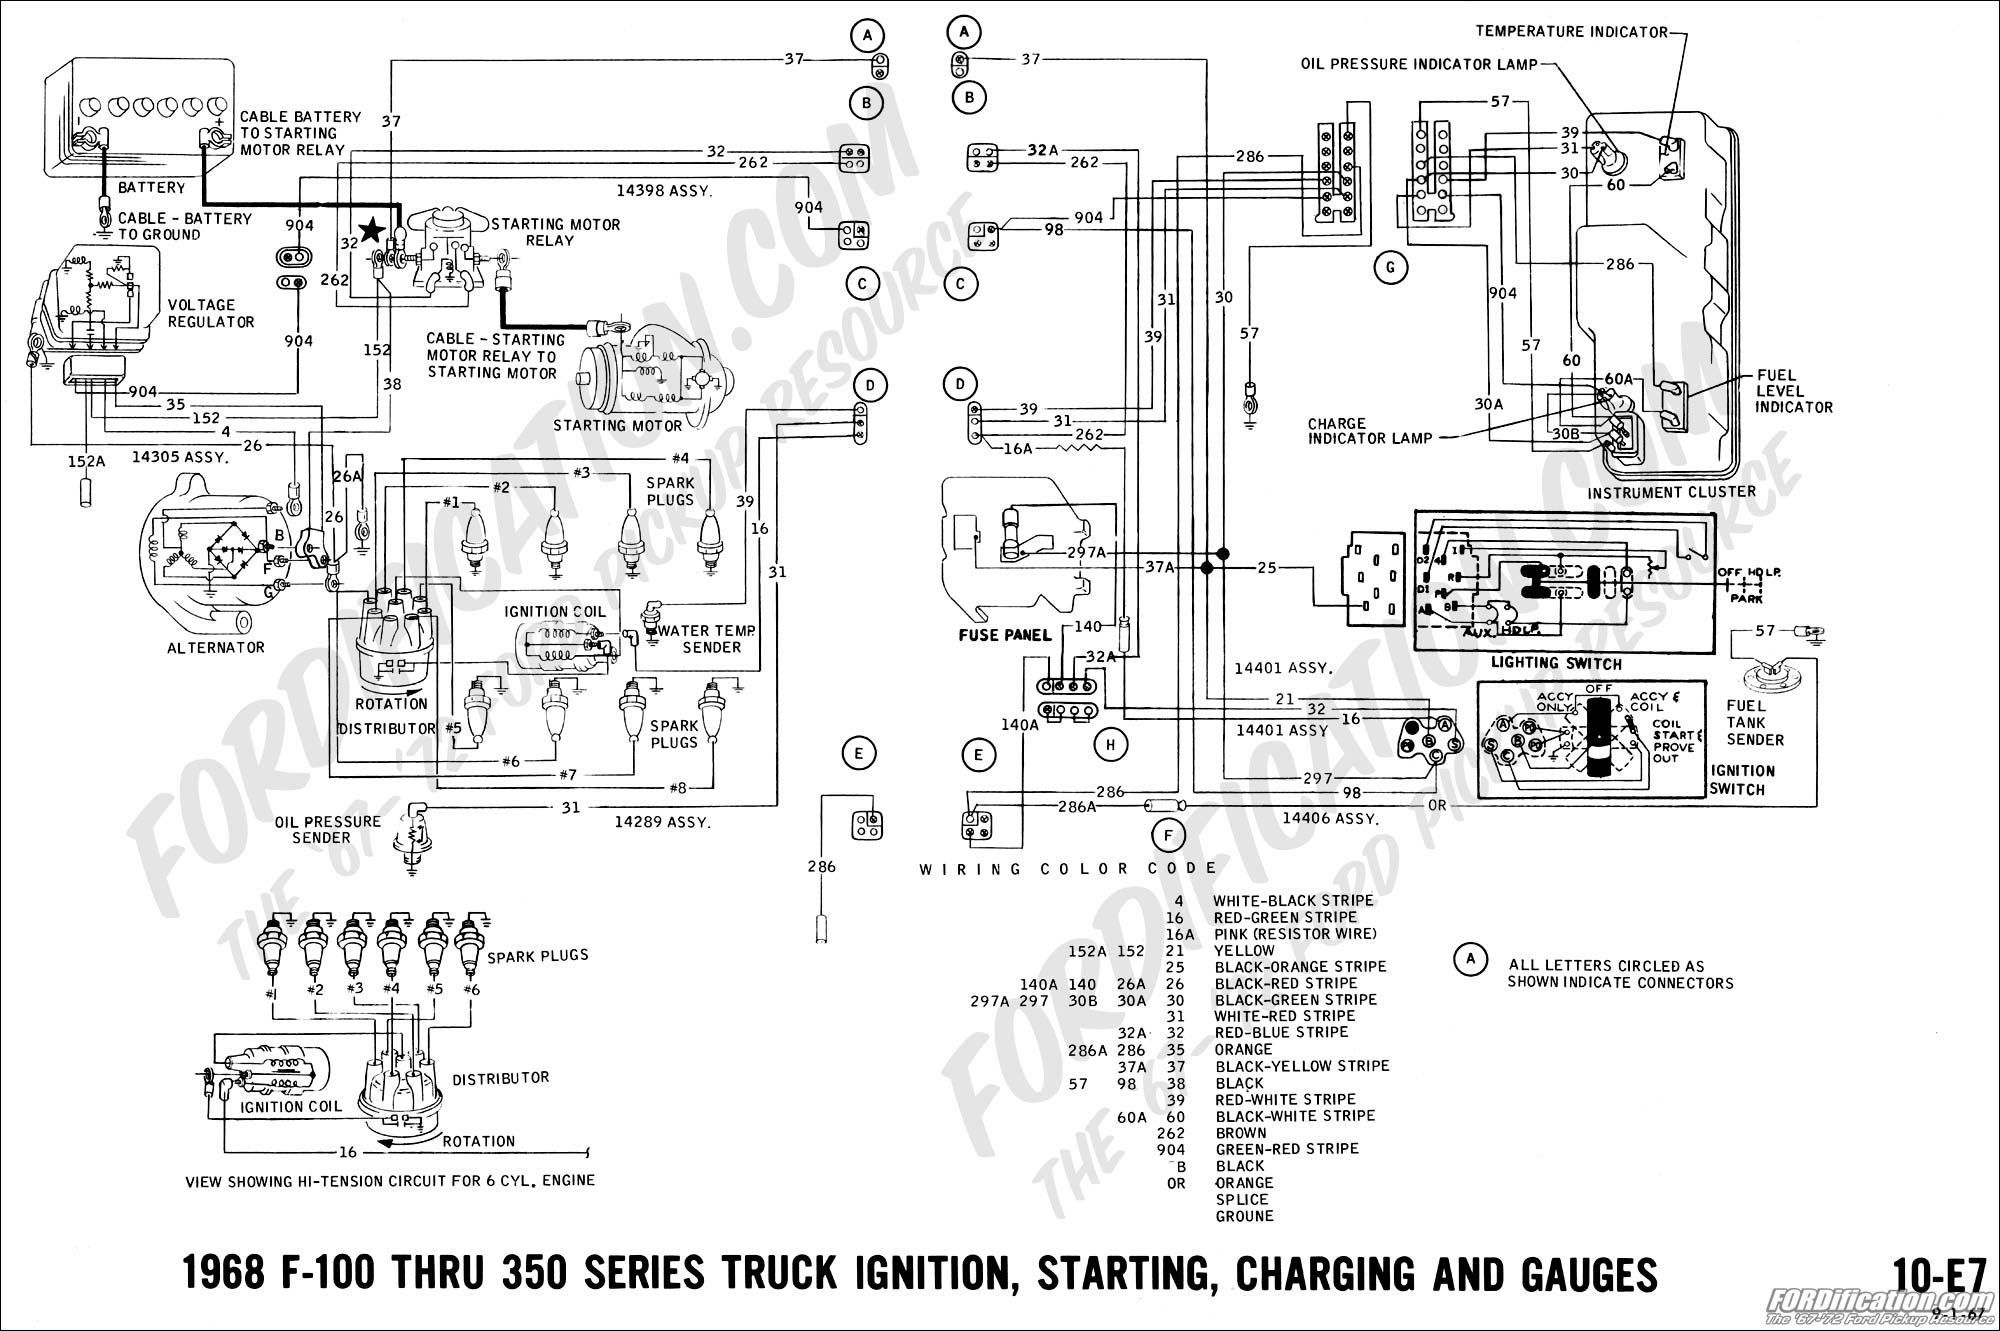 quadrajet electric choke wiring diagram mercruiser 3 0 alternator library libraries1978 ford diagrams scematicford